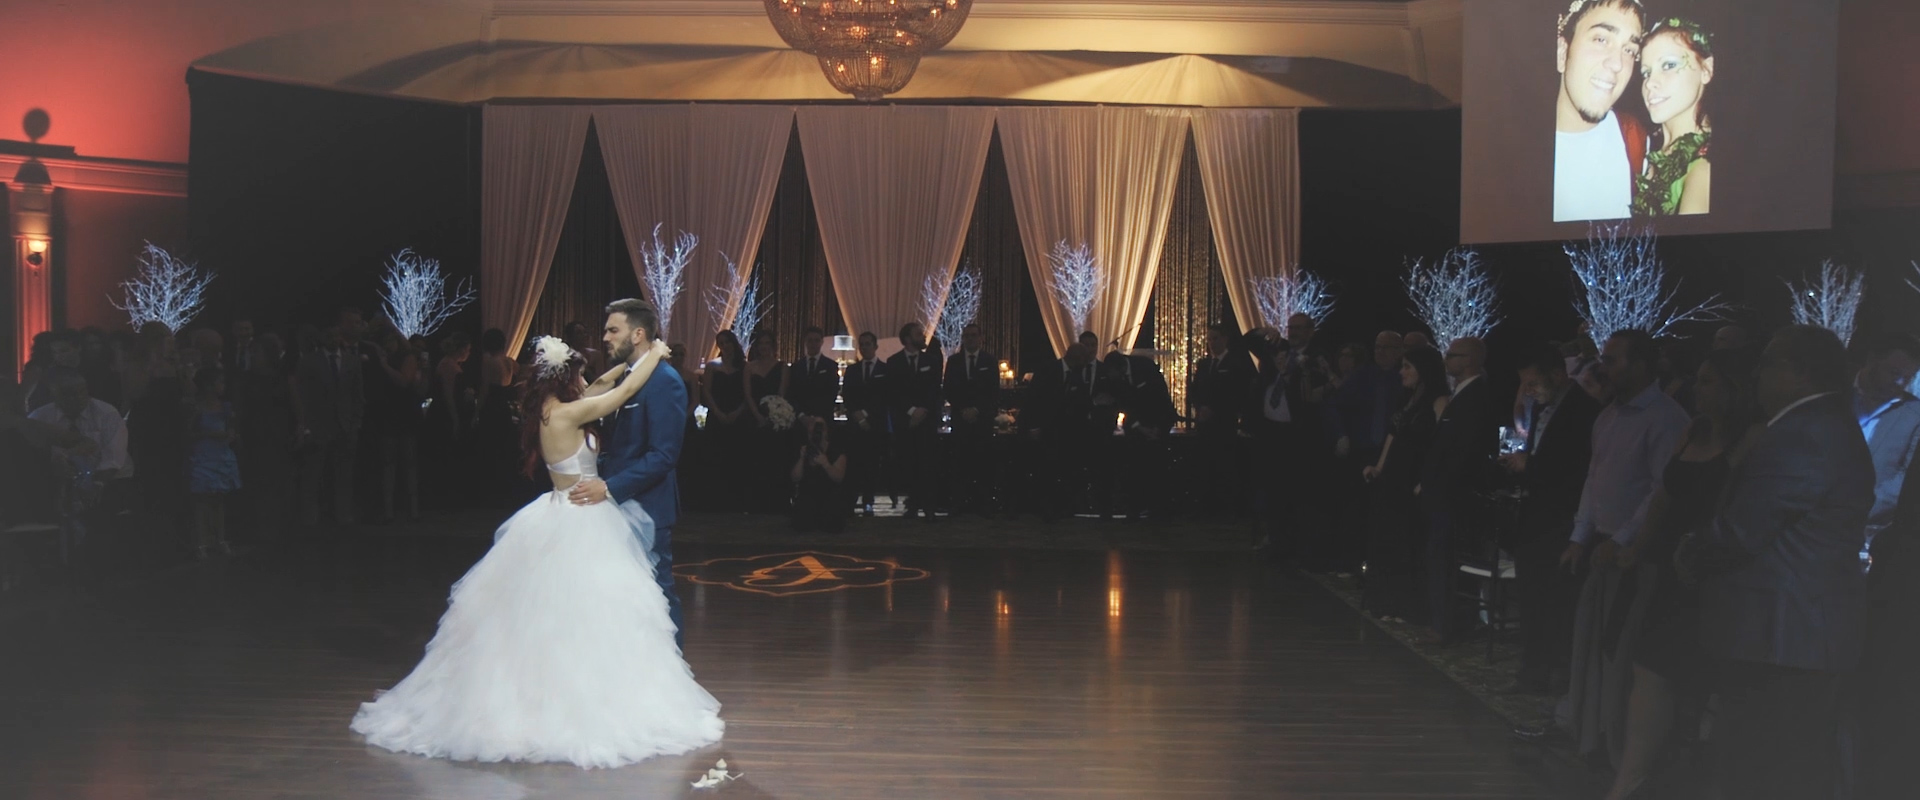 An image of a bride and groom during their first dance at their reception; taken from a Toronto Wedding Video